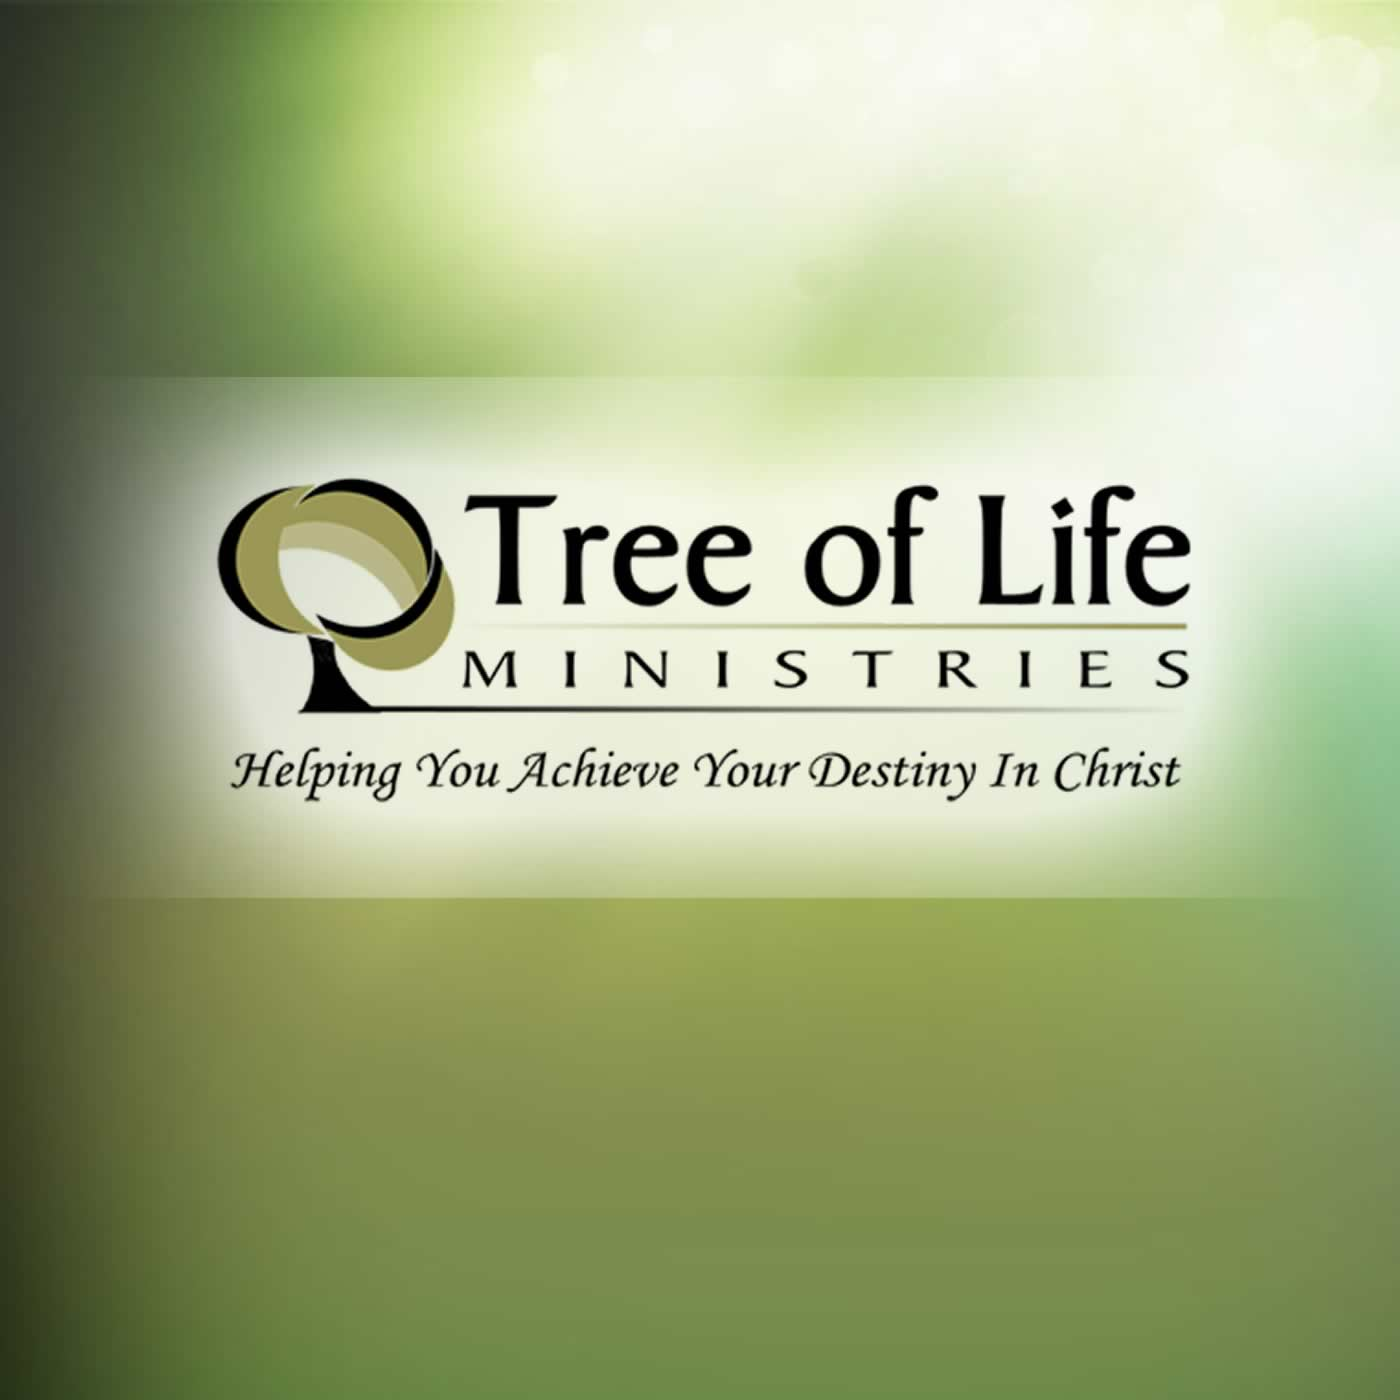 Tree of Life Ministries